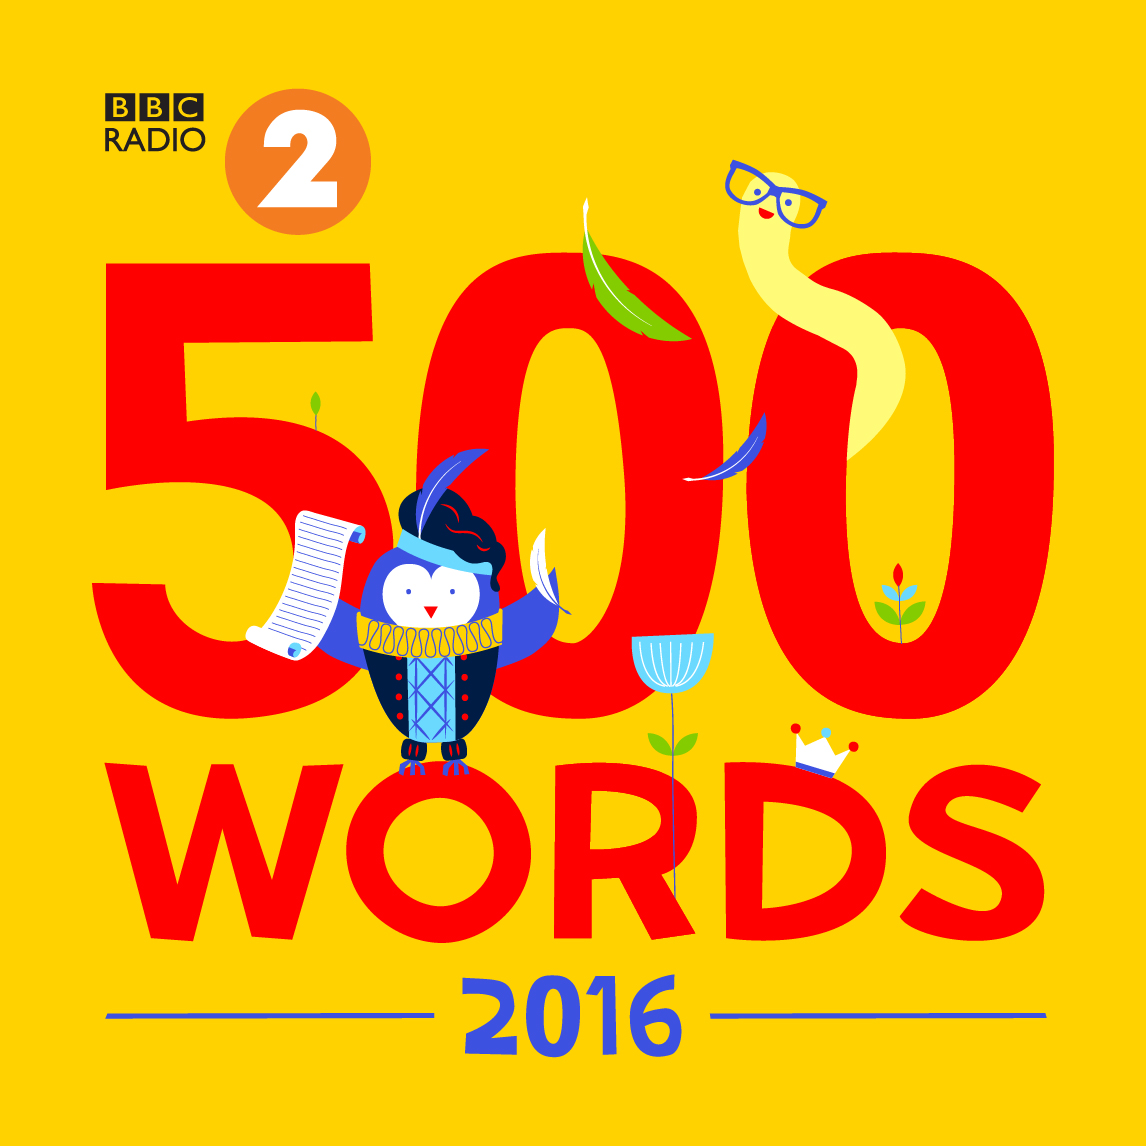 bbc radio 2 s 500 words competition launched hrh the duchess bbc radio 2 s 500 words competition launched hrh the duchess of cornwall